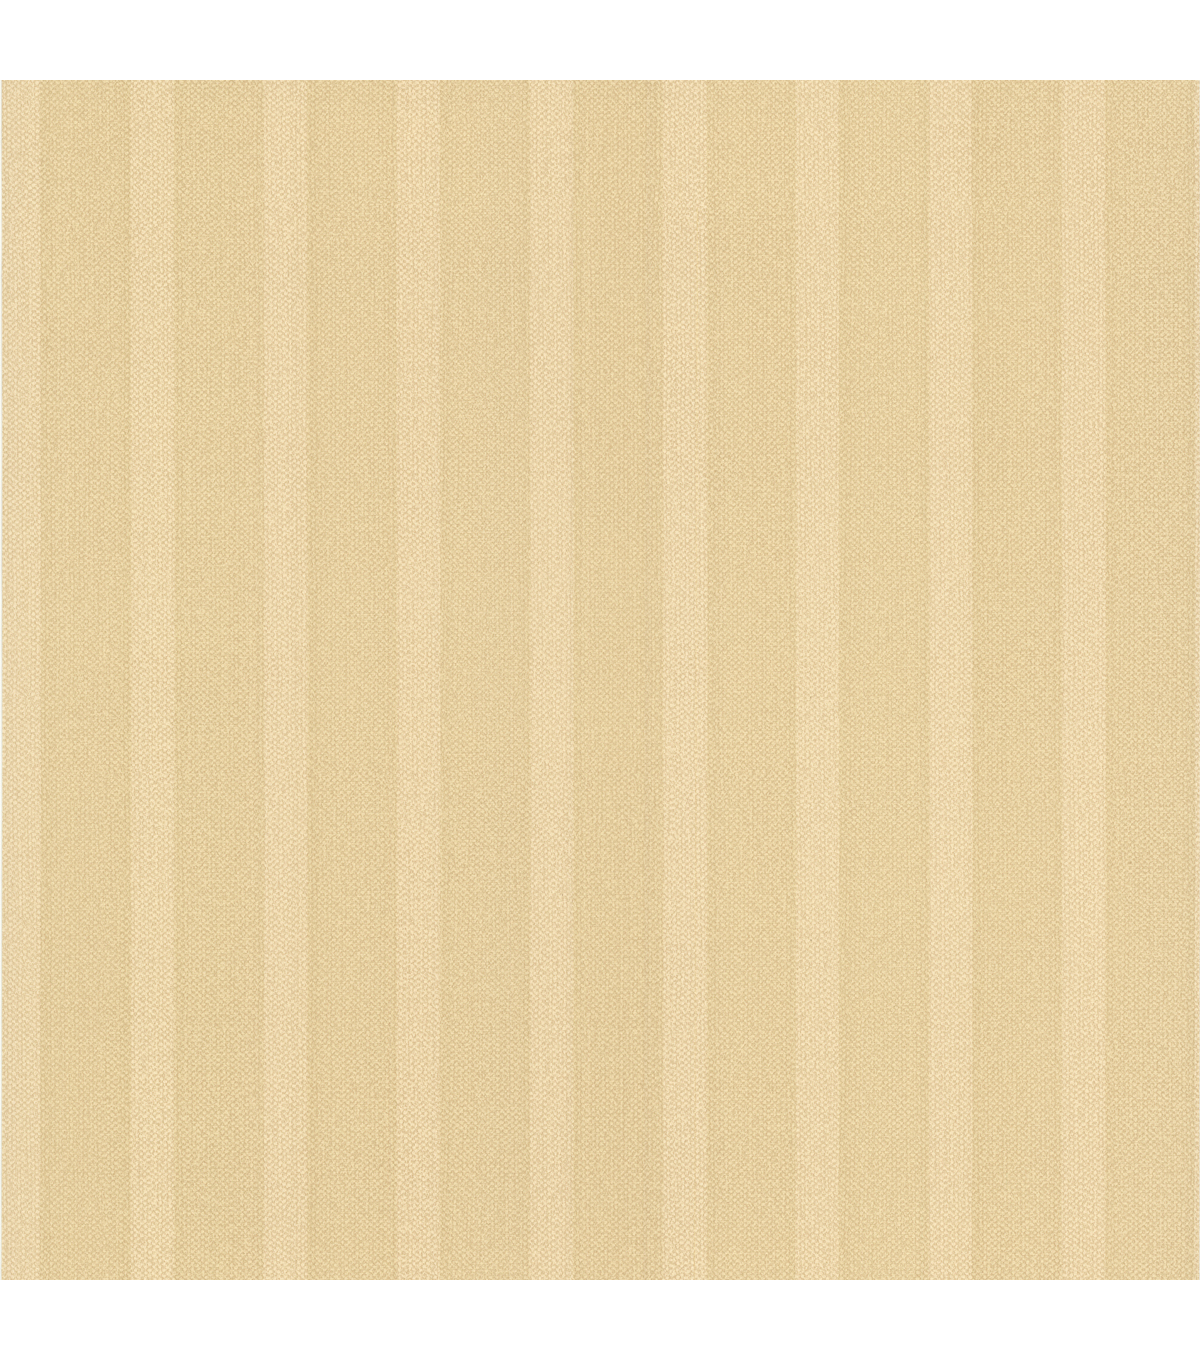 Miram Light Green Stripe Texture Wallpaper